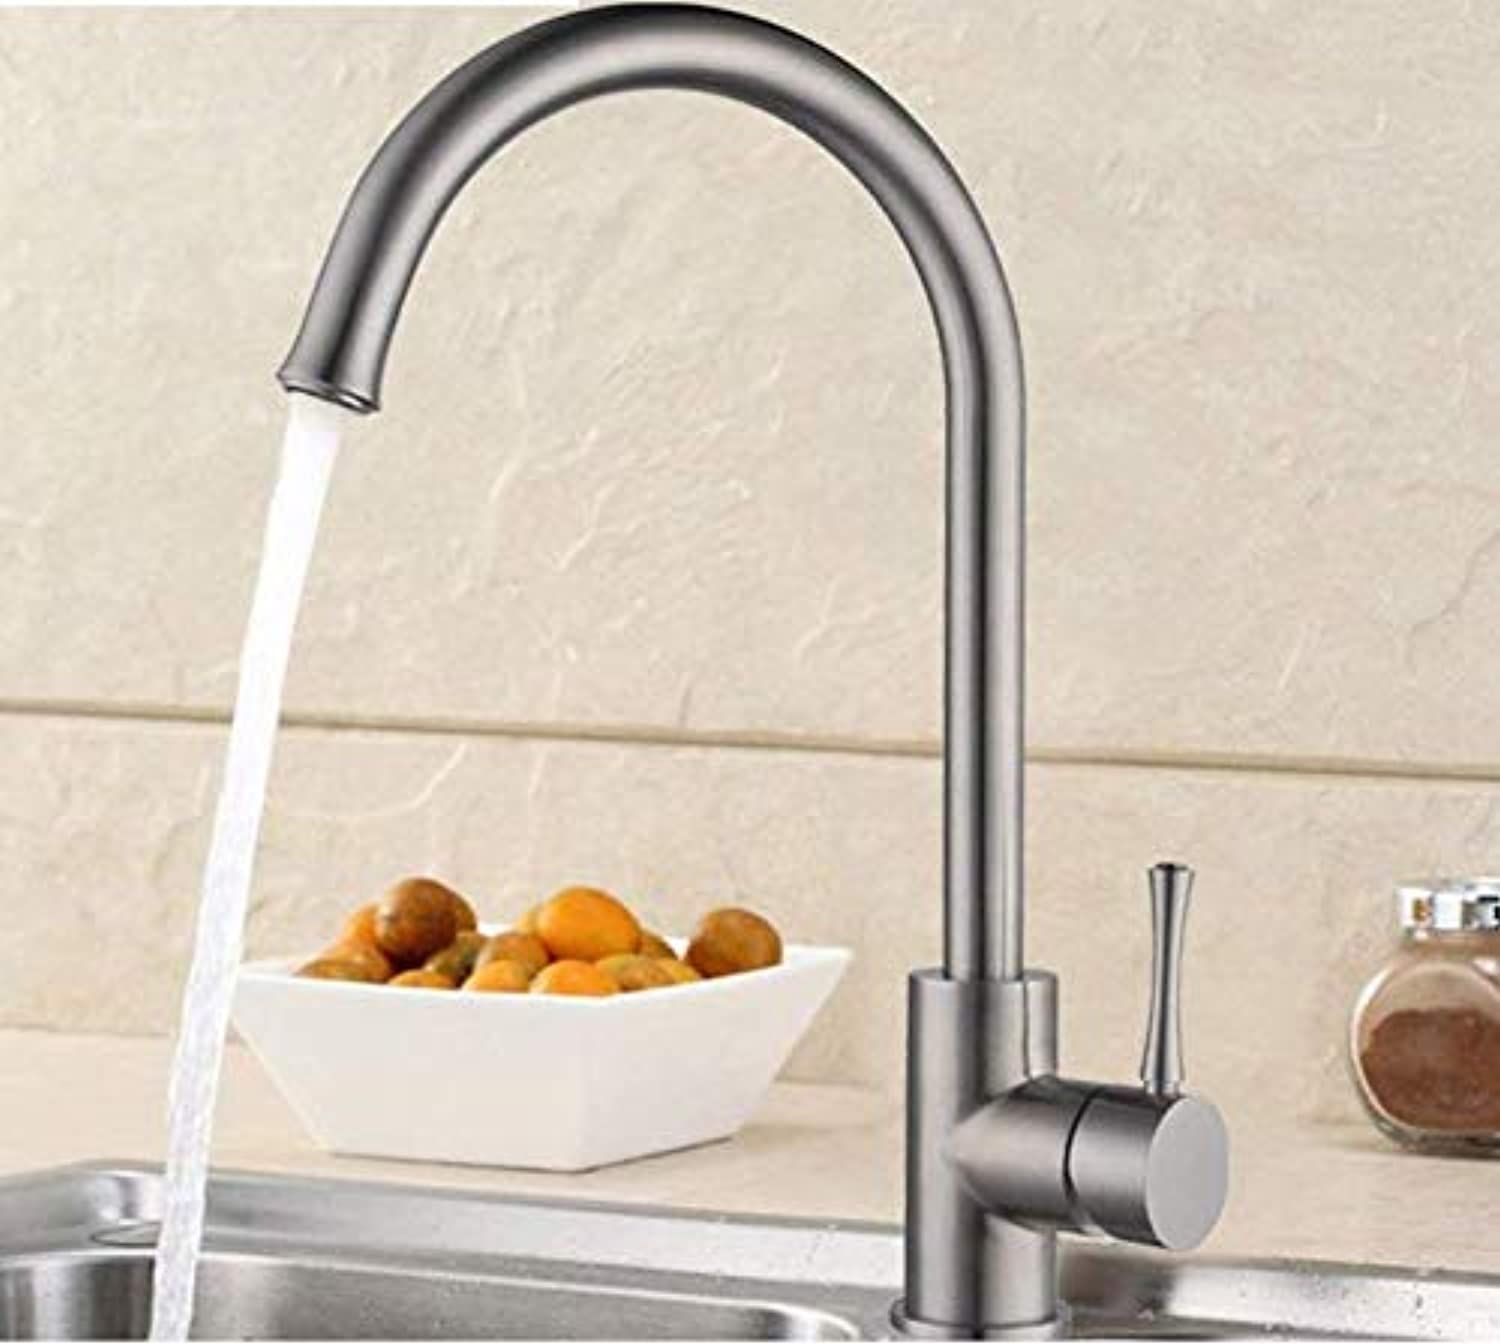 Kitchen fauct Kitchen Faucet Stainless Steel Kitchen Faucet Vegetables Basin hot and Cold taps redatable Faucet (color   -, Size   -)